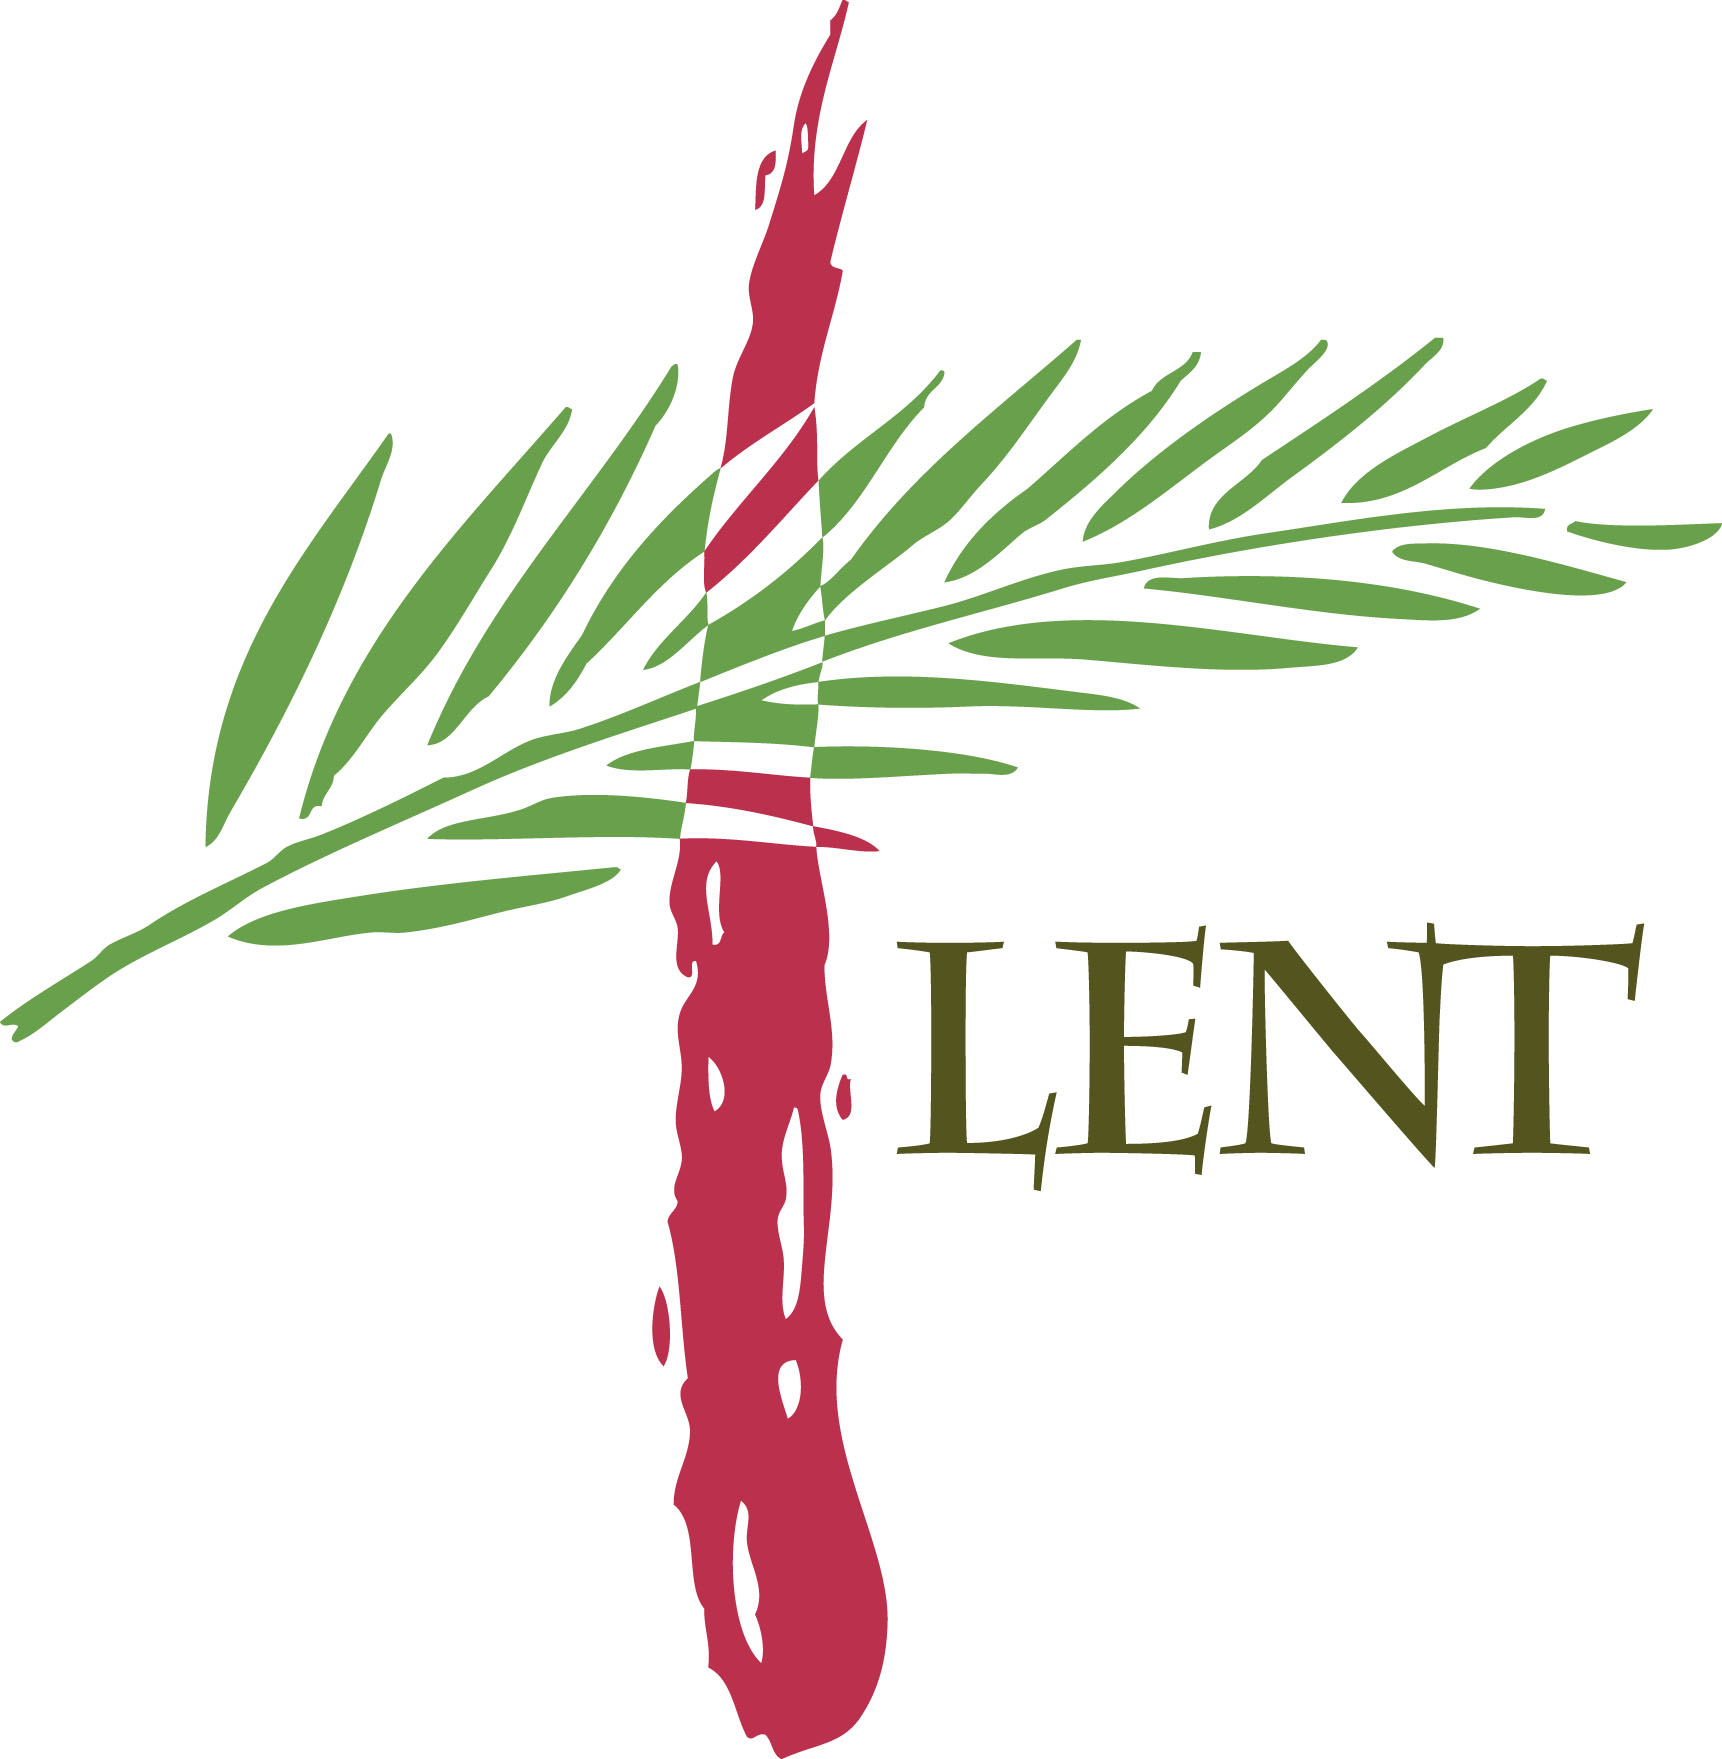 Lent Clipart Free   Clipart Best